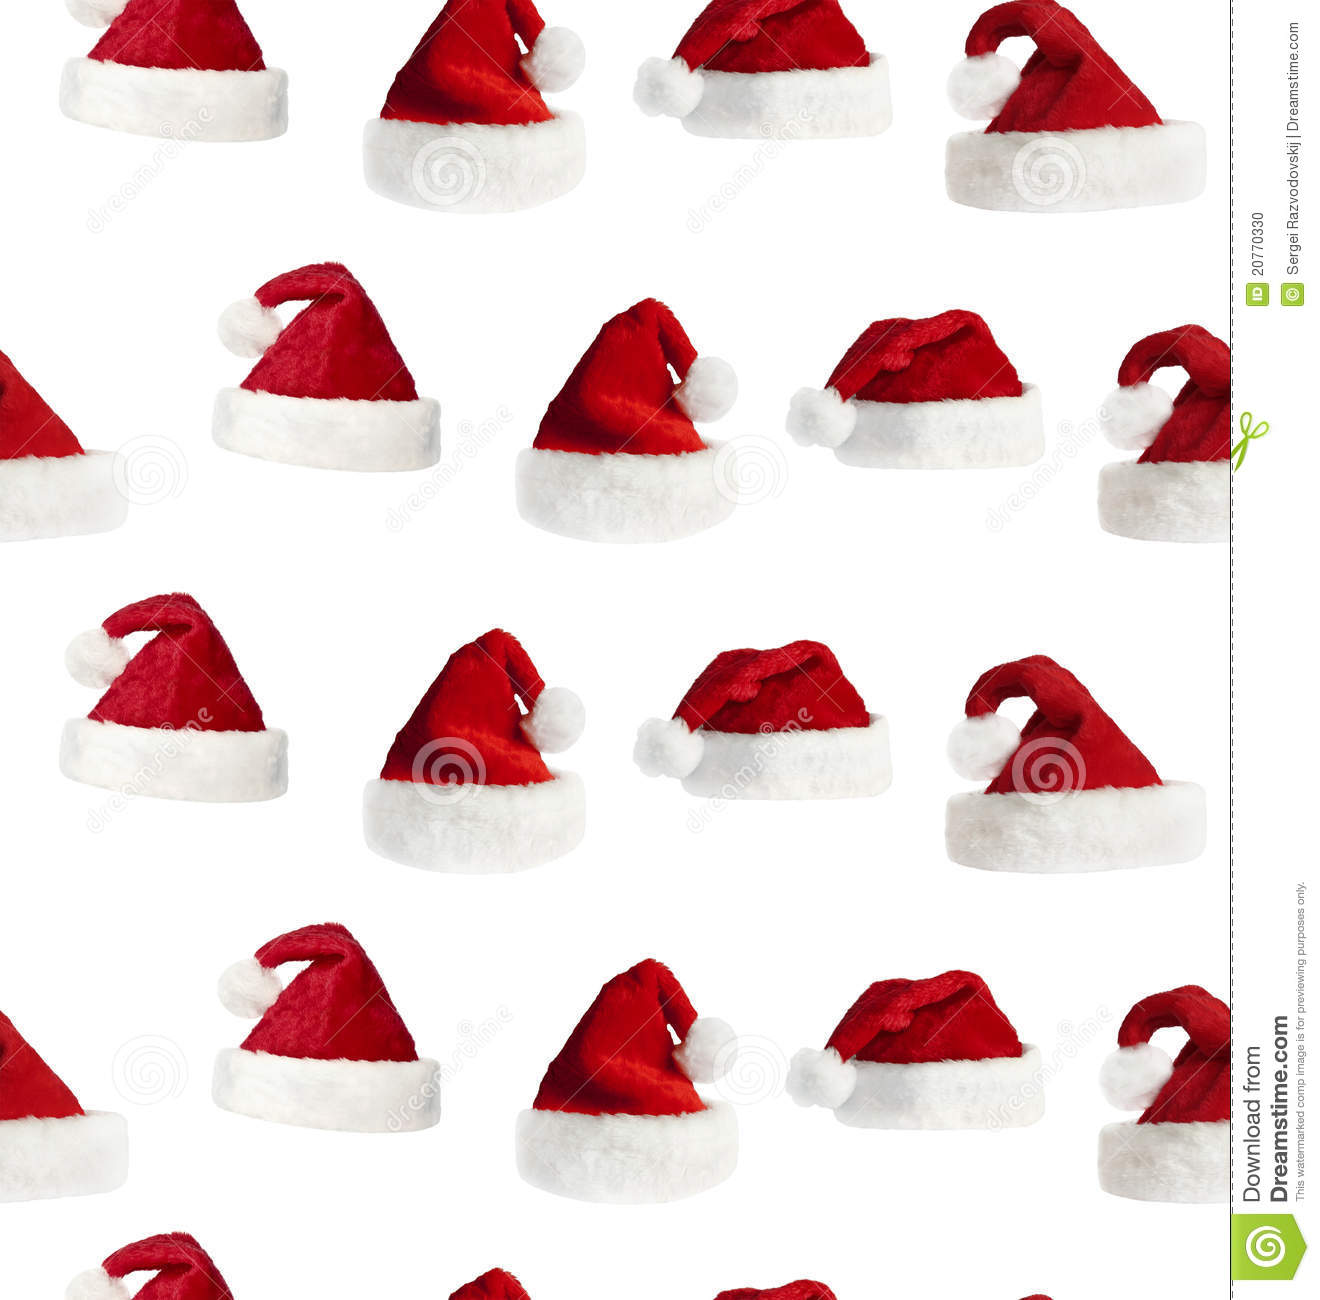 34f2093c3ca Seamless Santa Hat Background Stock Photo - Image of decorative ...